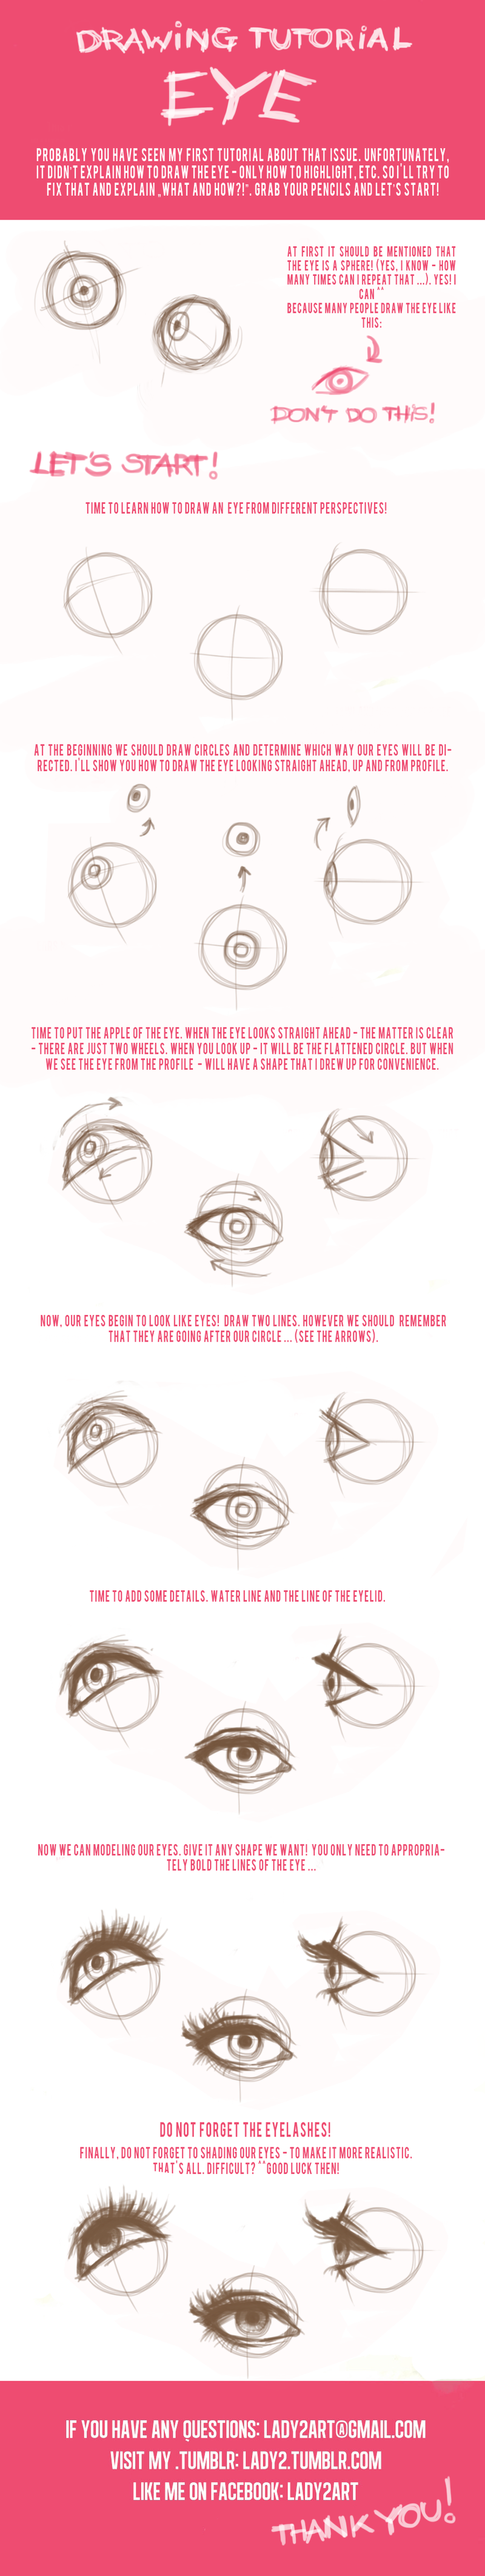 eye_tutorial. by Lady2